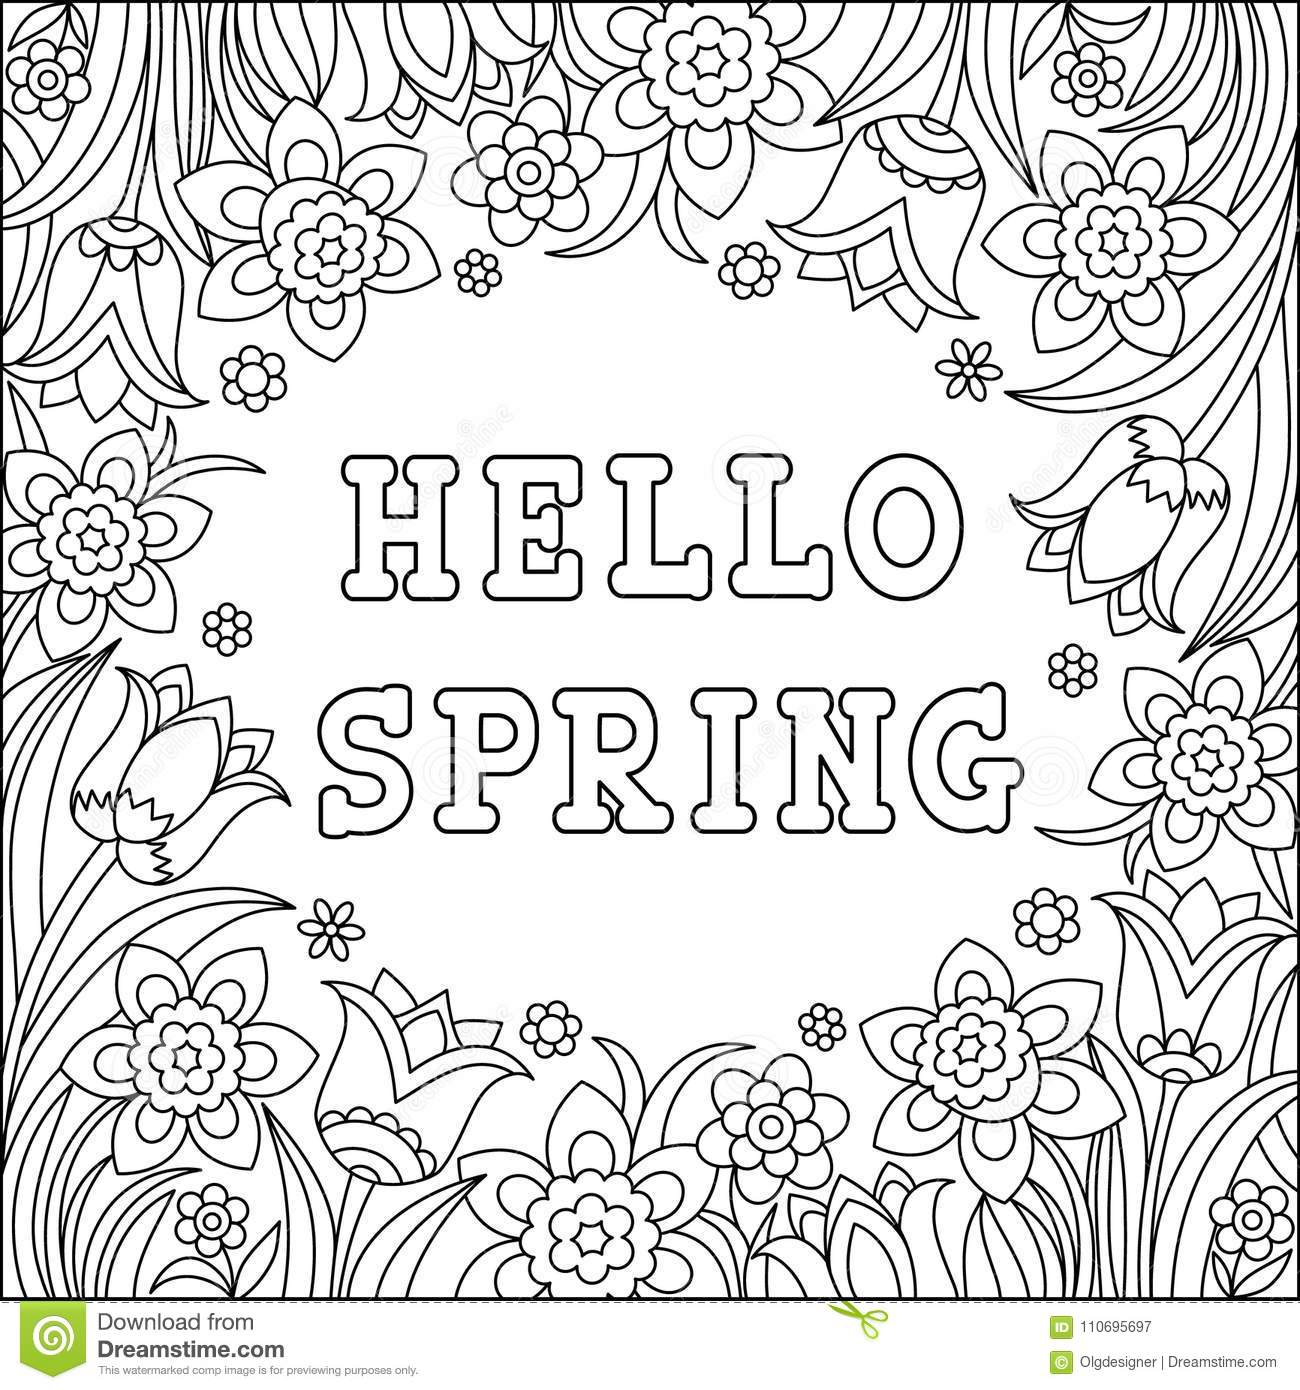 Hello Spring Coloring Page Stock Vector Illustration Of